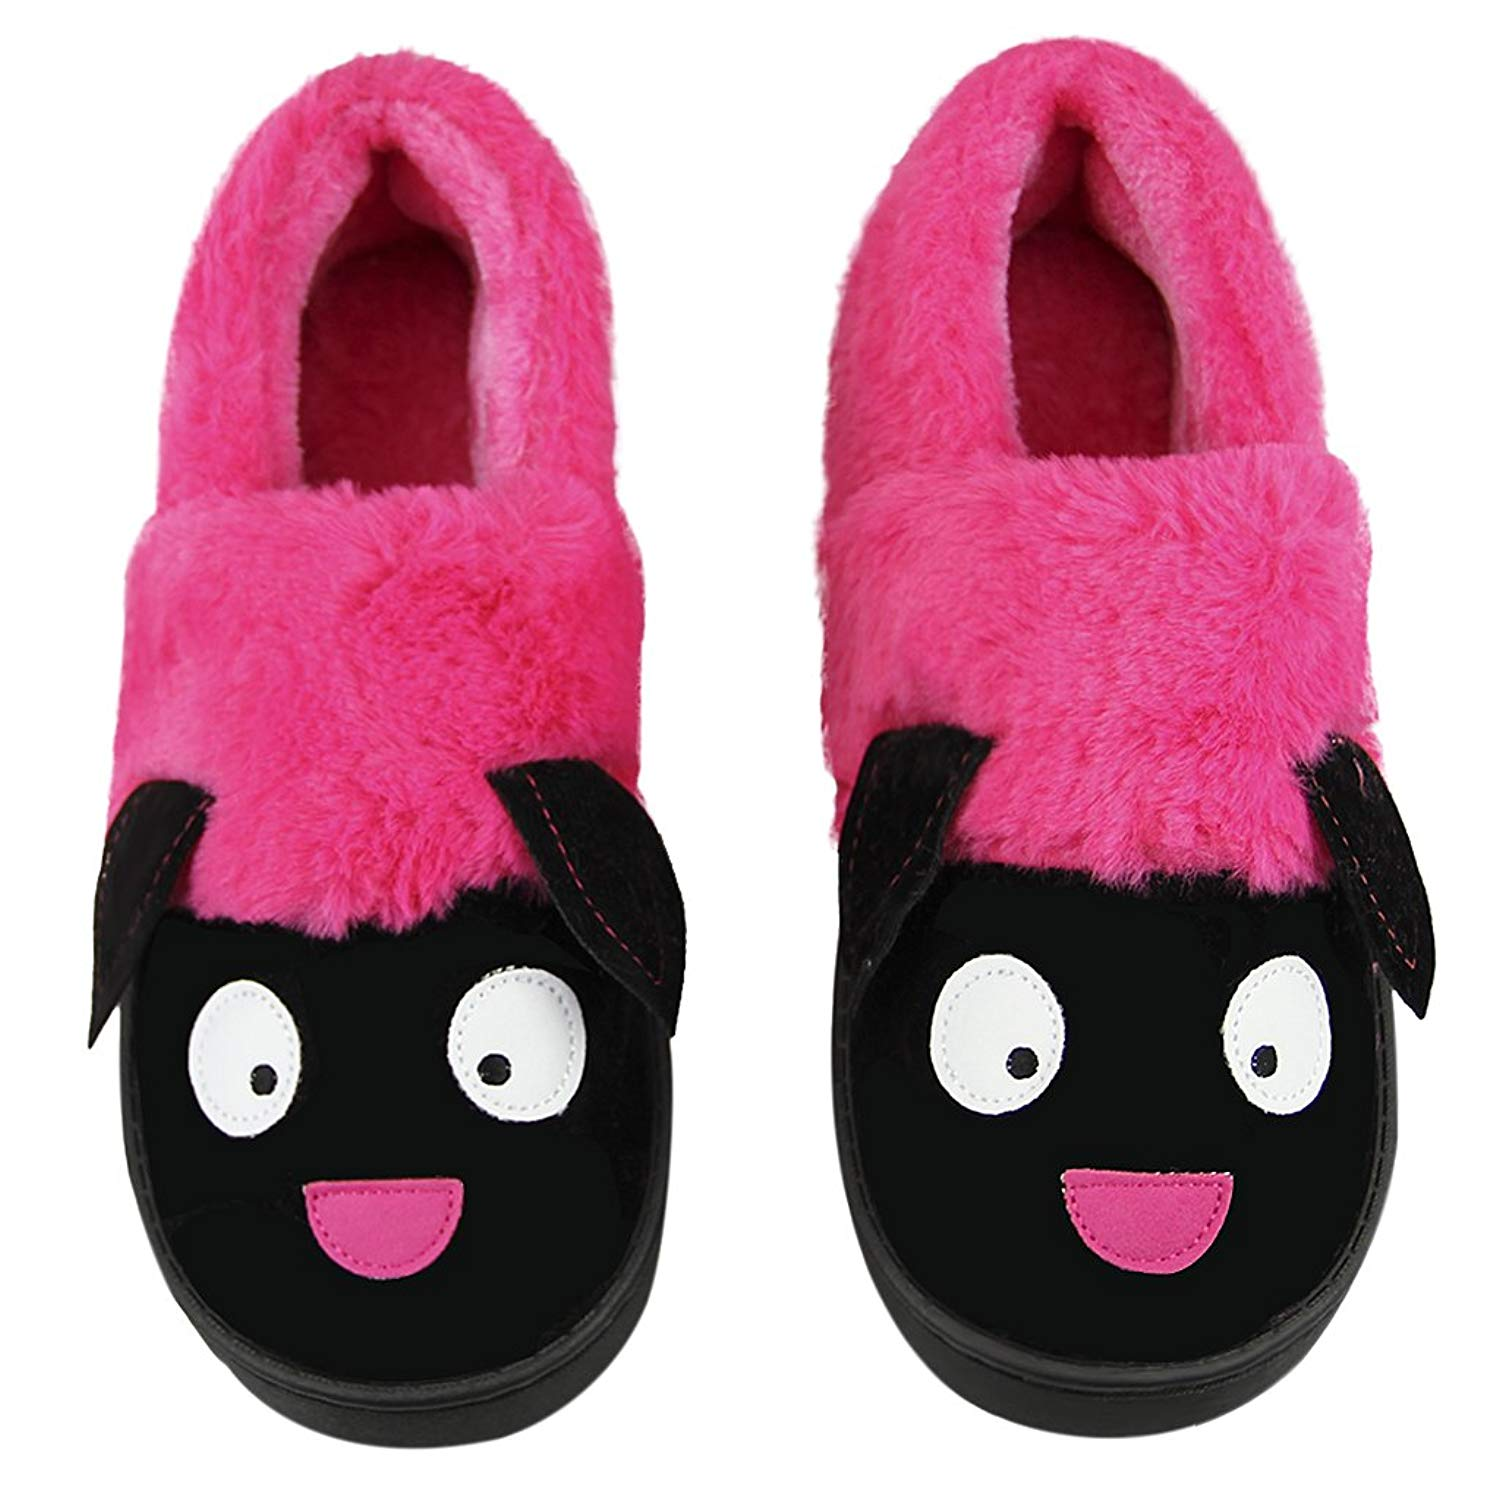 d7b9fbd540aec Get Quotations · Unisex Winter Indoor Slip-on Slippers